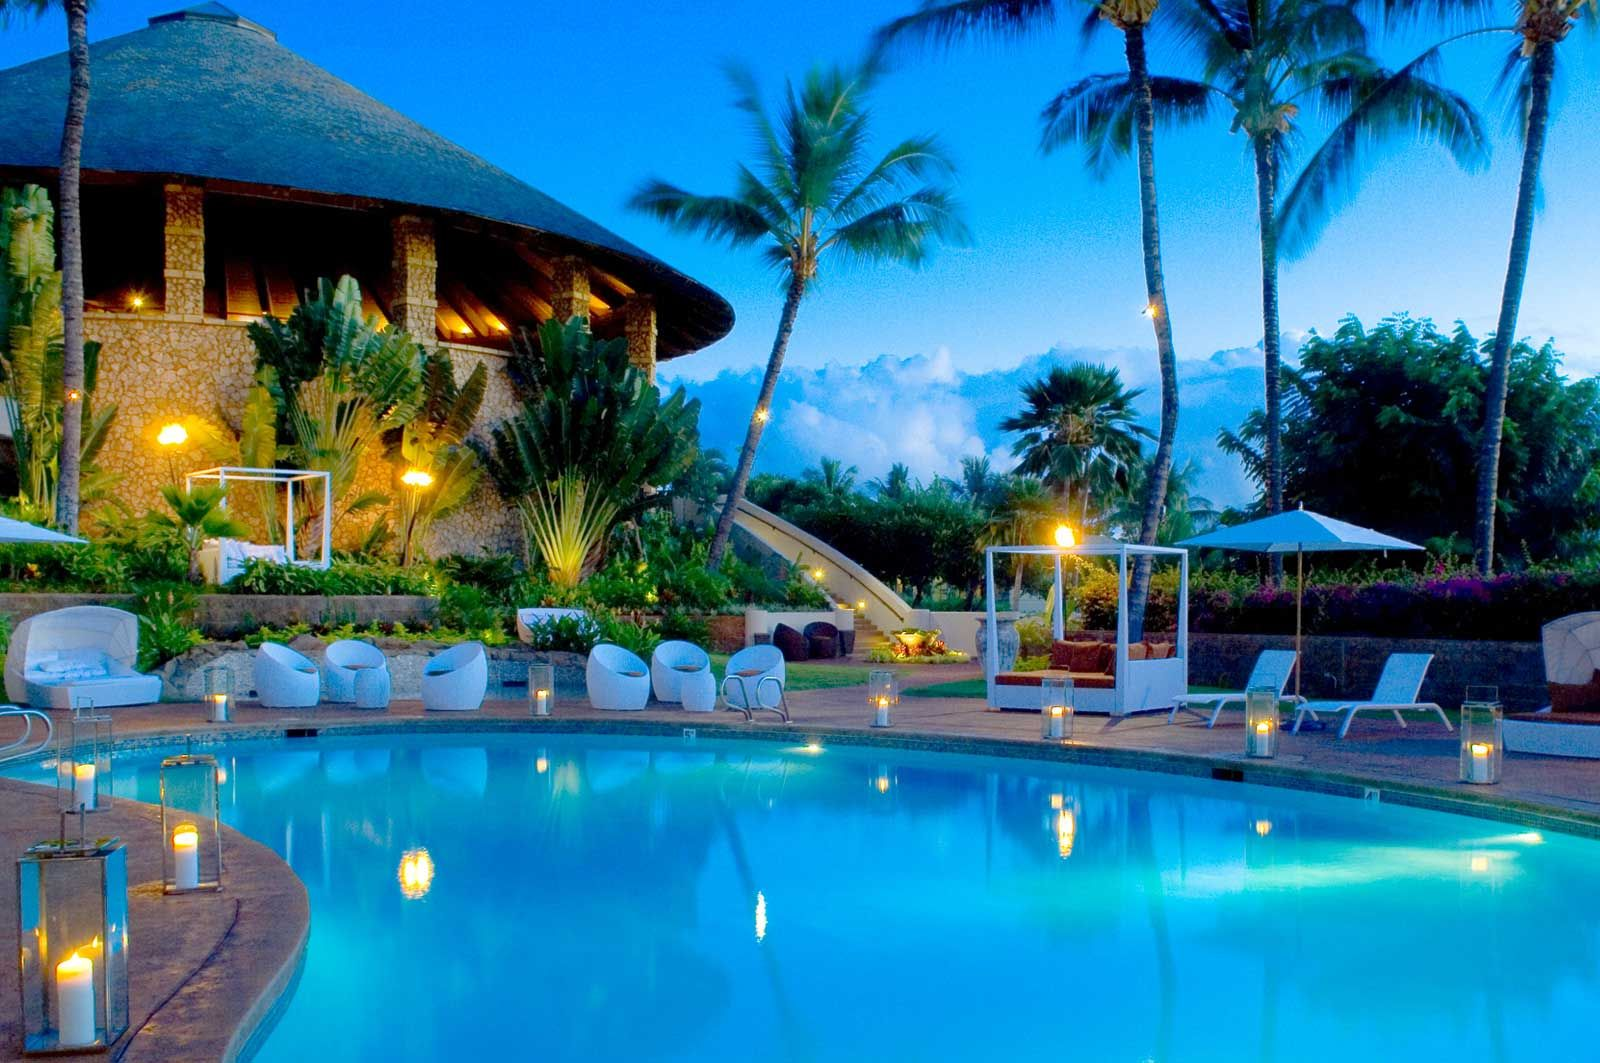 image gallery maui luxury hotels ForNicest Hotels In Maui